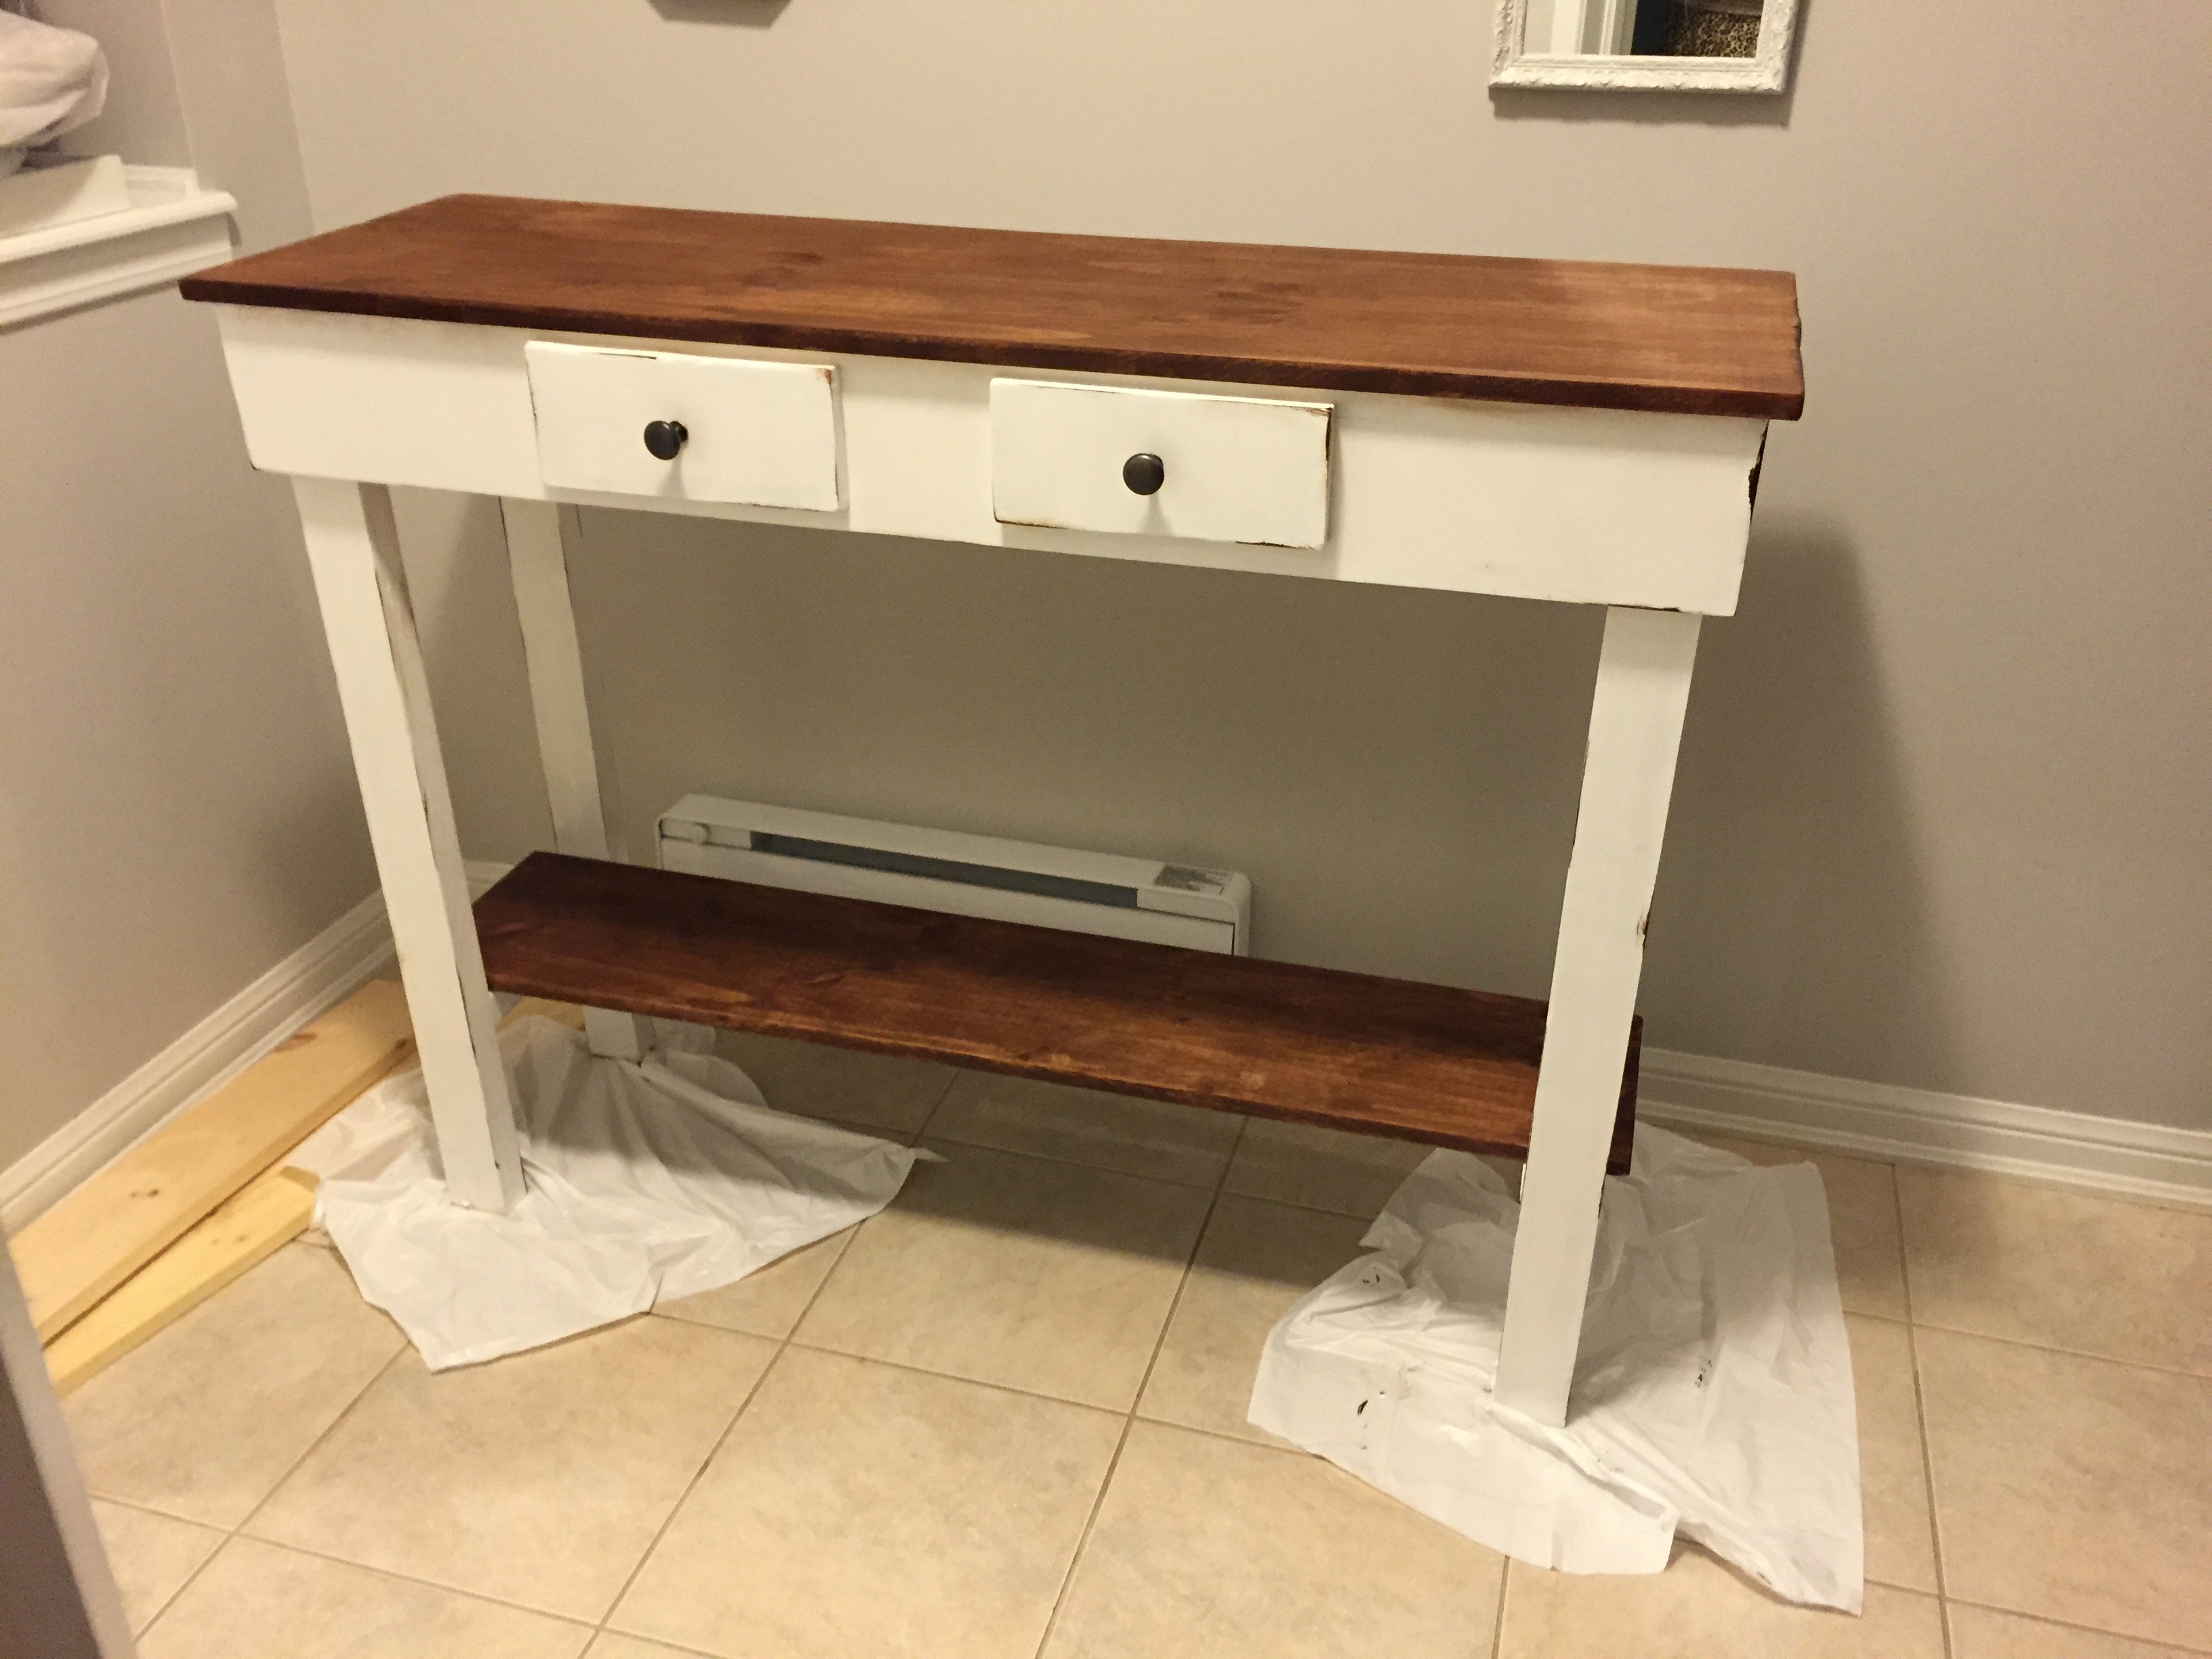 DIY SOFA TABLE JACLYN COLVILLE - Canadian tire bedroom furniture